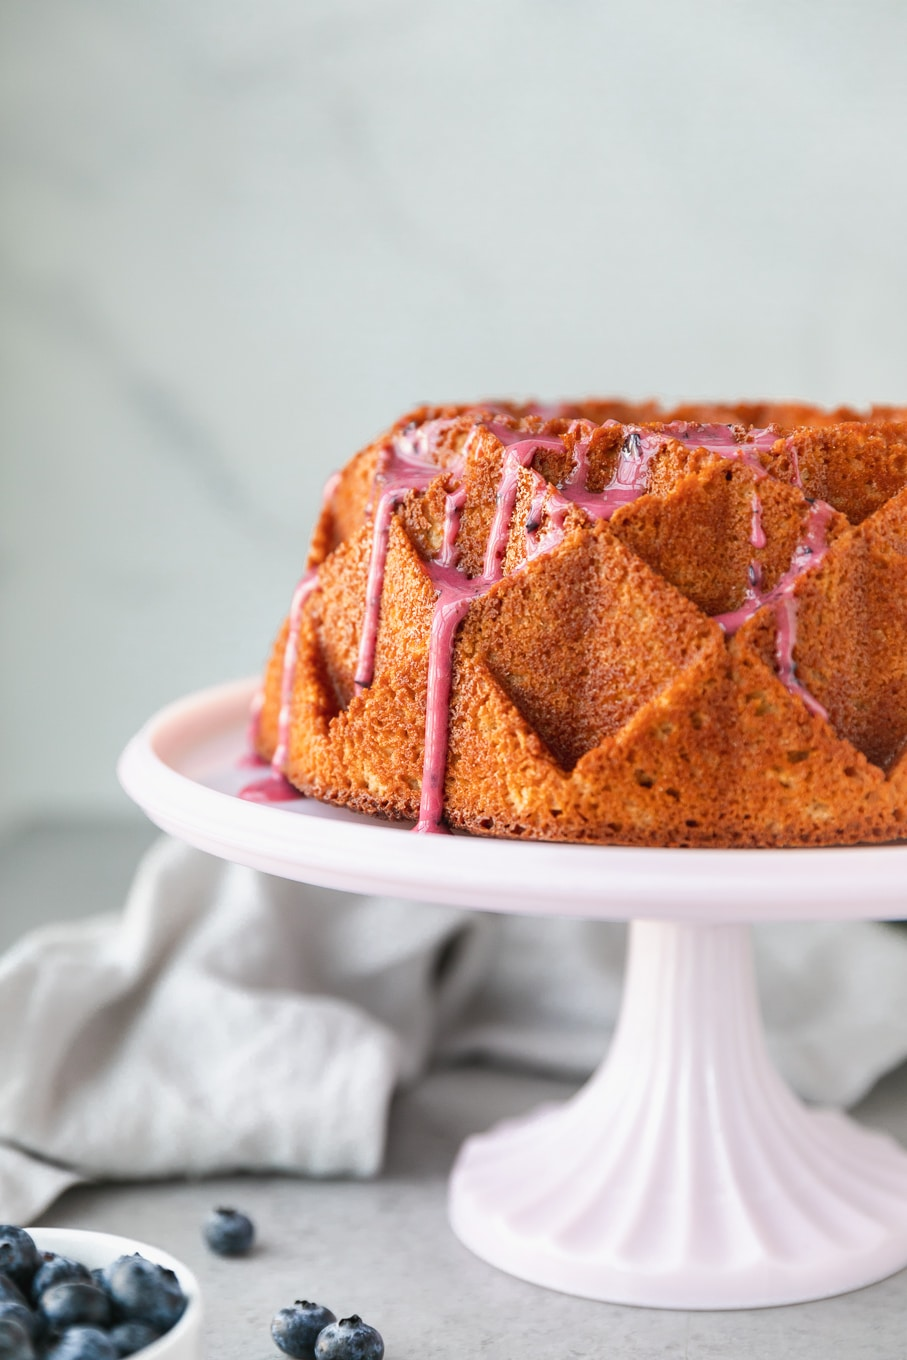 Close up shot of a lemon pound cake lightly drizzled with blueberry glaze on a light pink cake stand